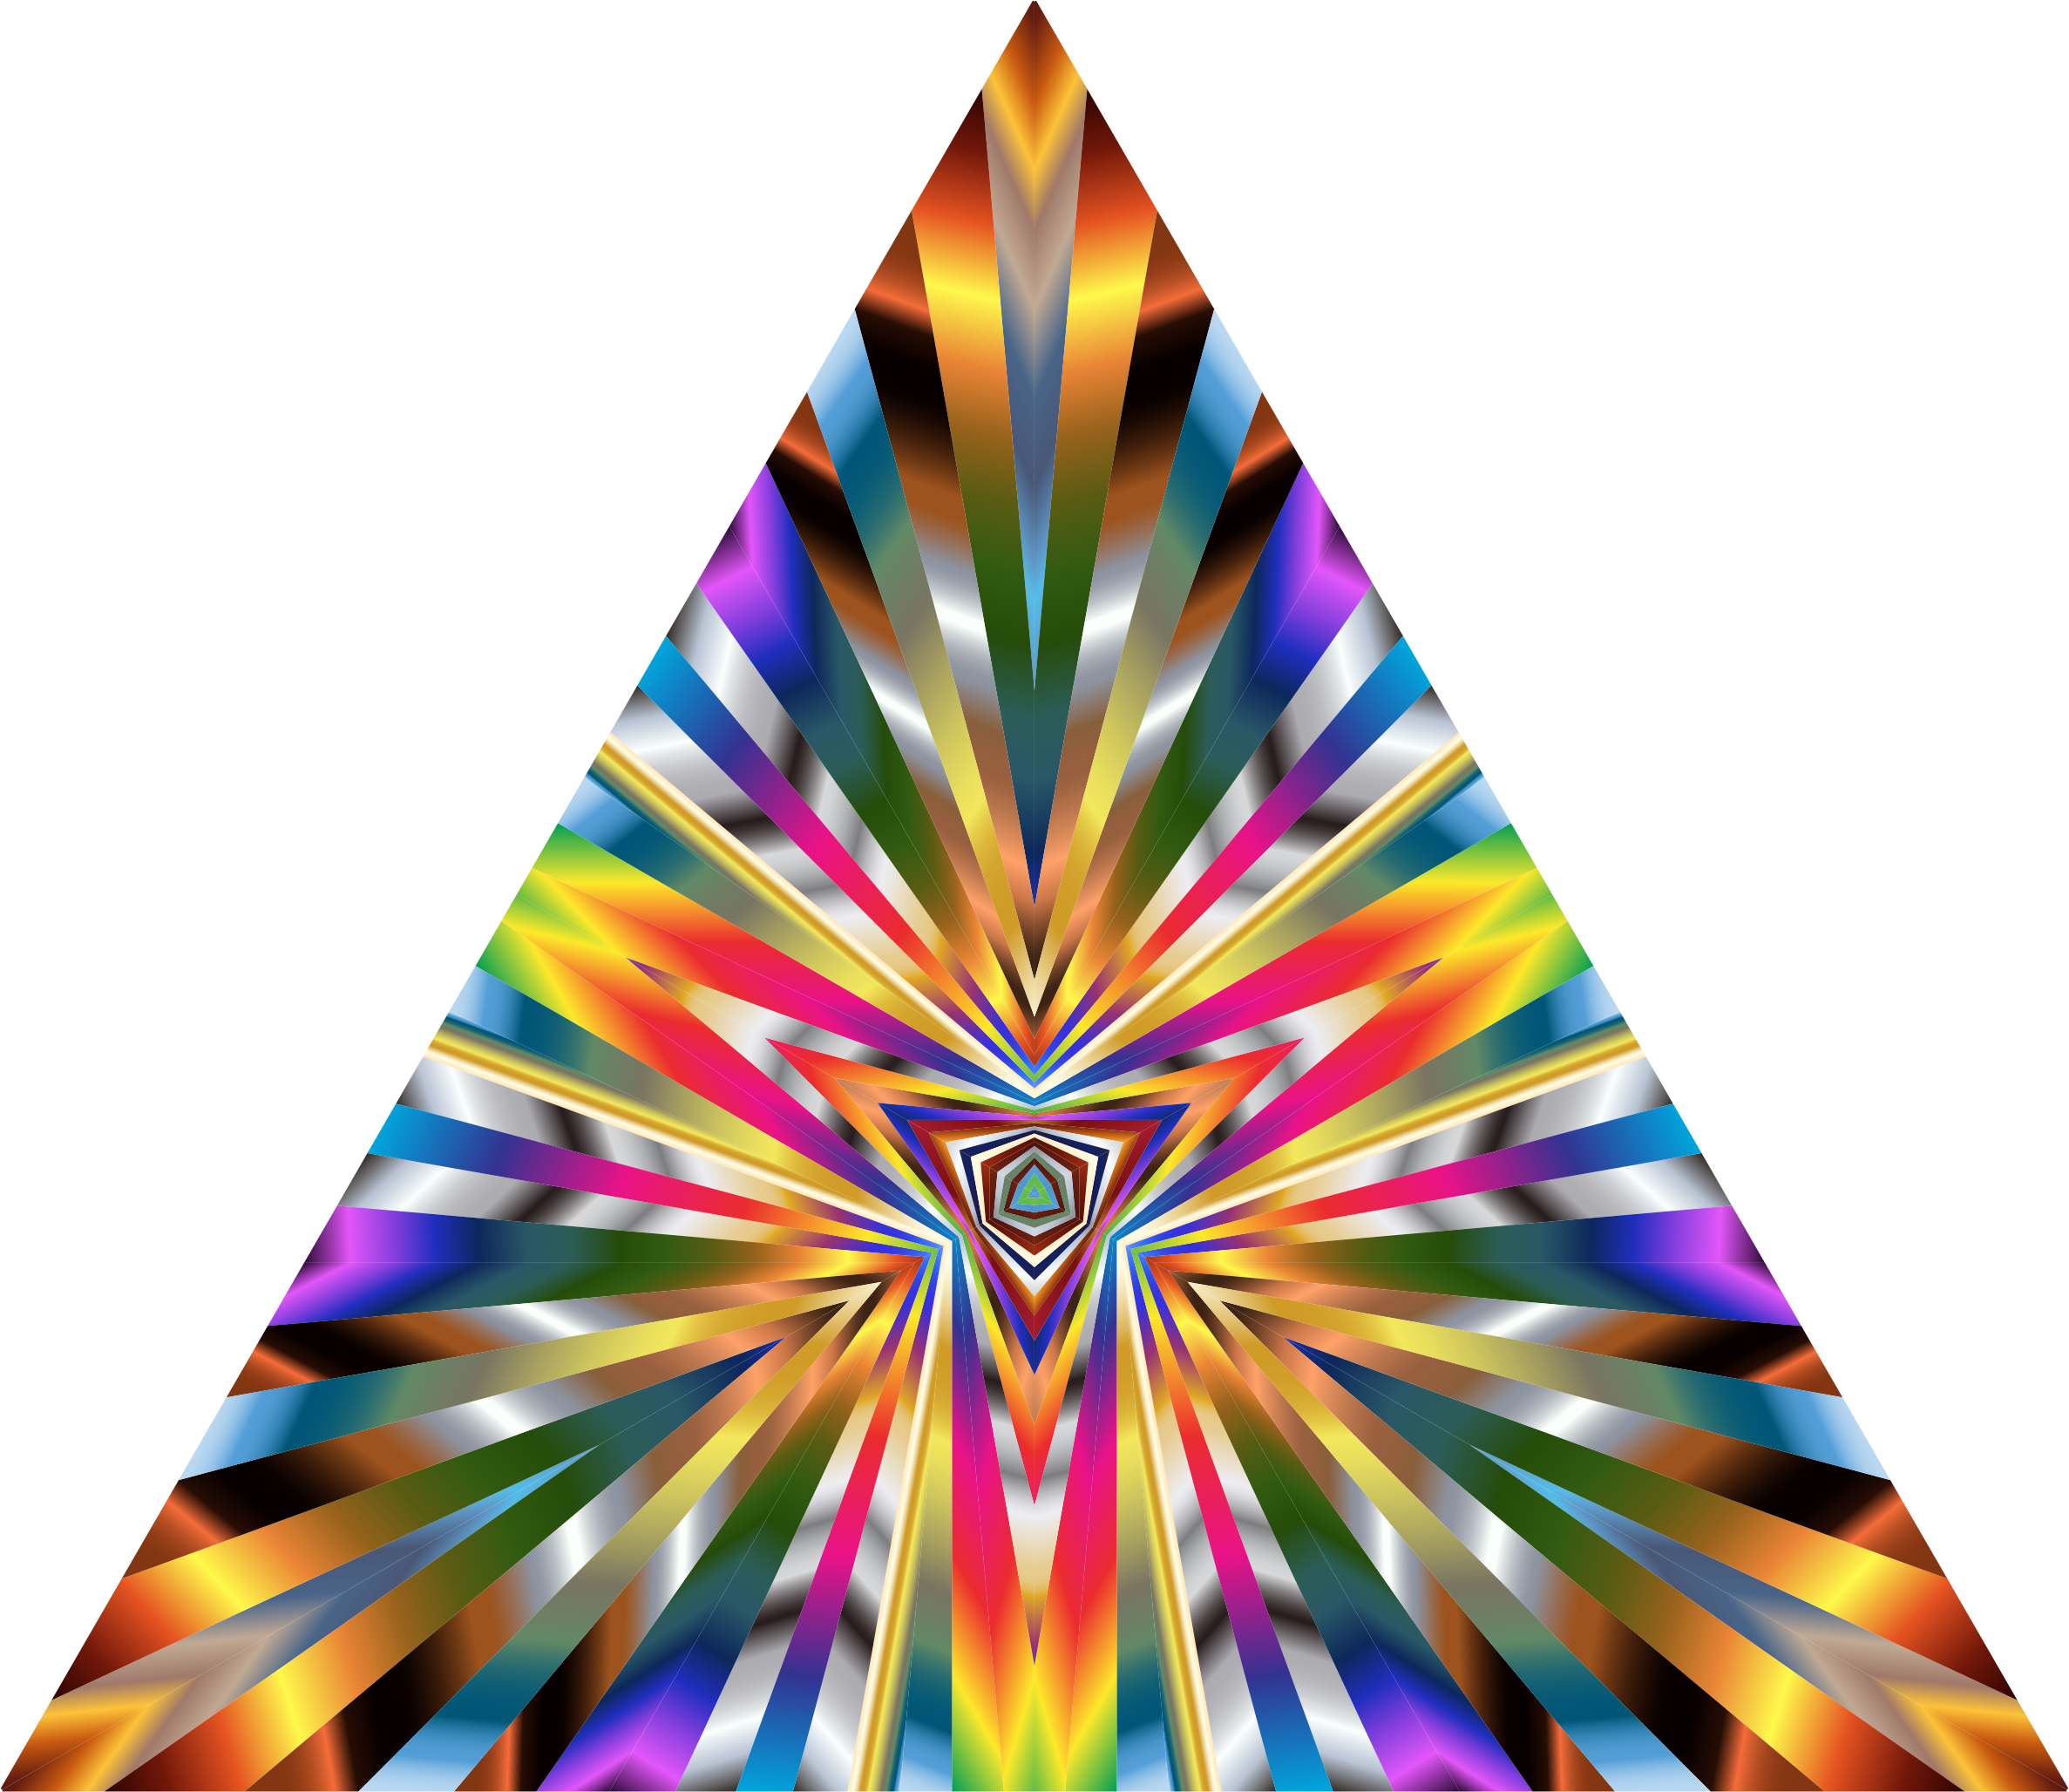 Primordial big image png. Triangular clipart pyramid